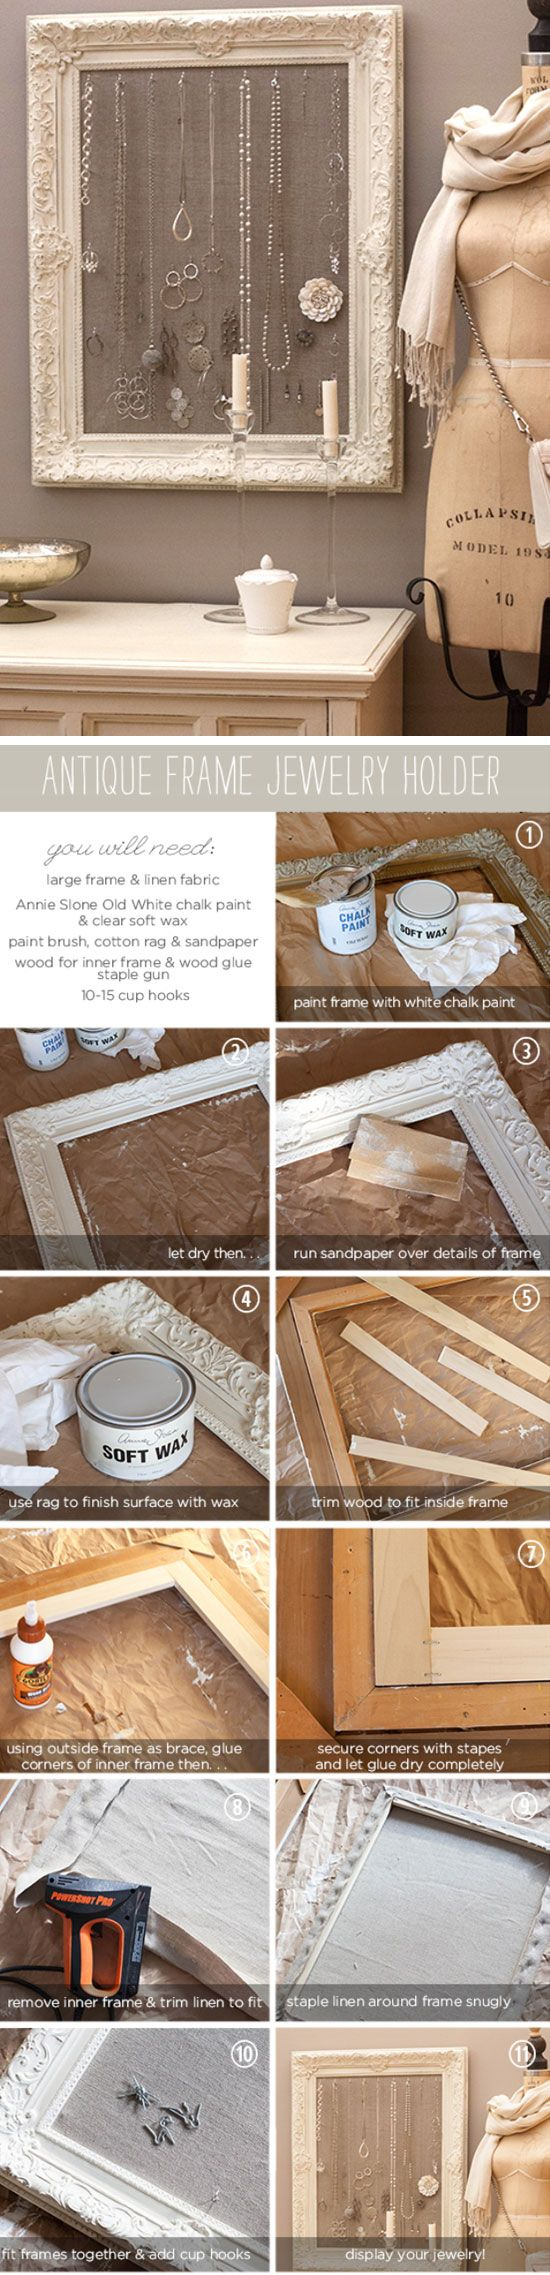 diy antique frame jewelry holder click pic for 20 dollar store crafts for home decor